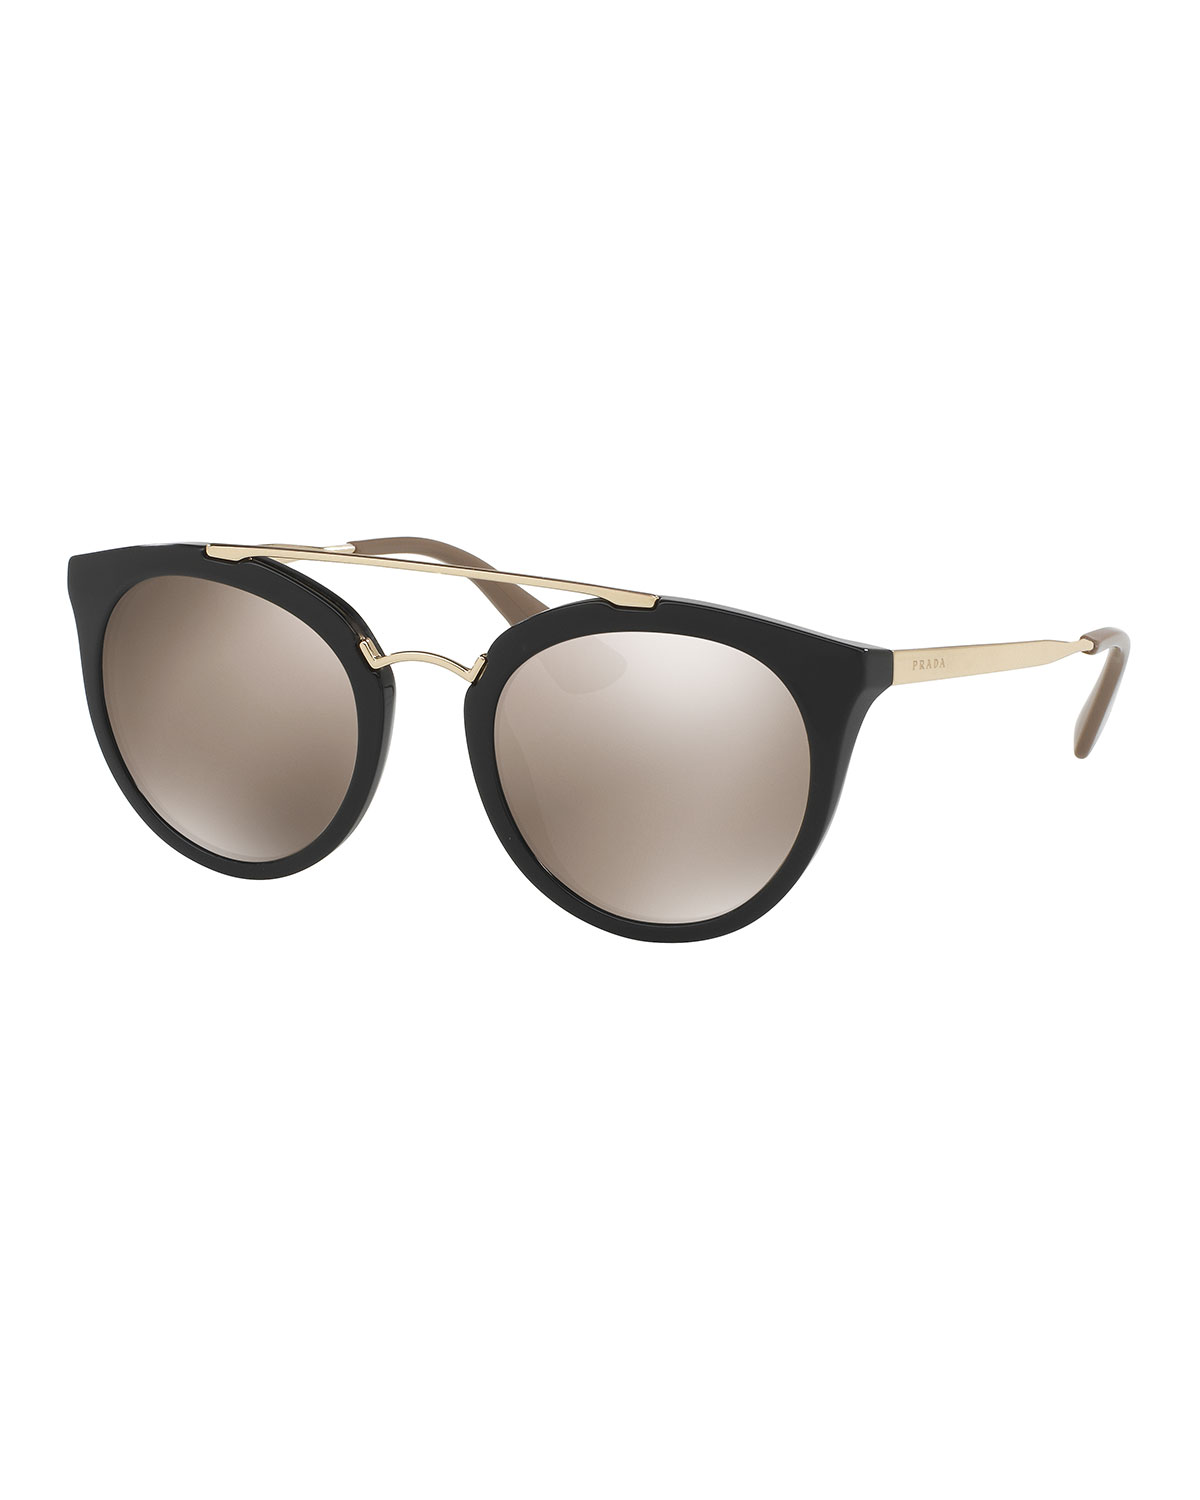 4c97c8484ca Prada Mirrored Cat-Eye Double-Bridge Sunglasses